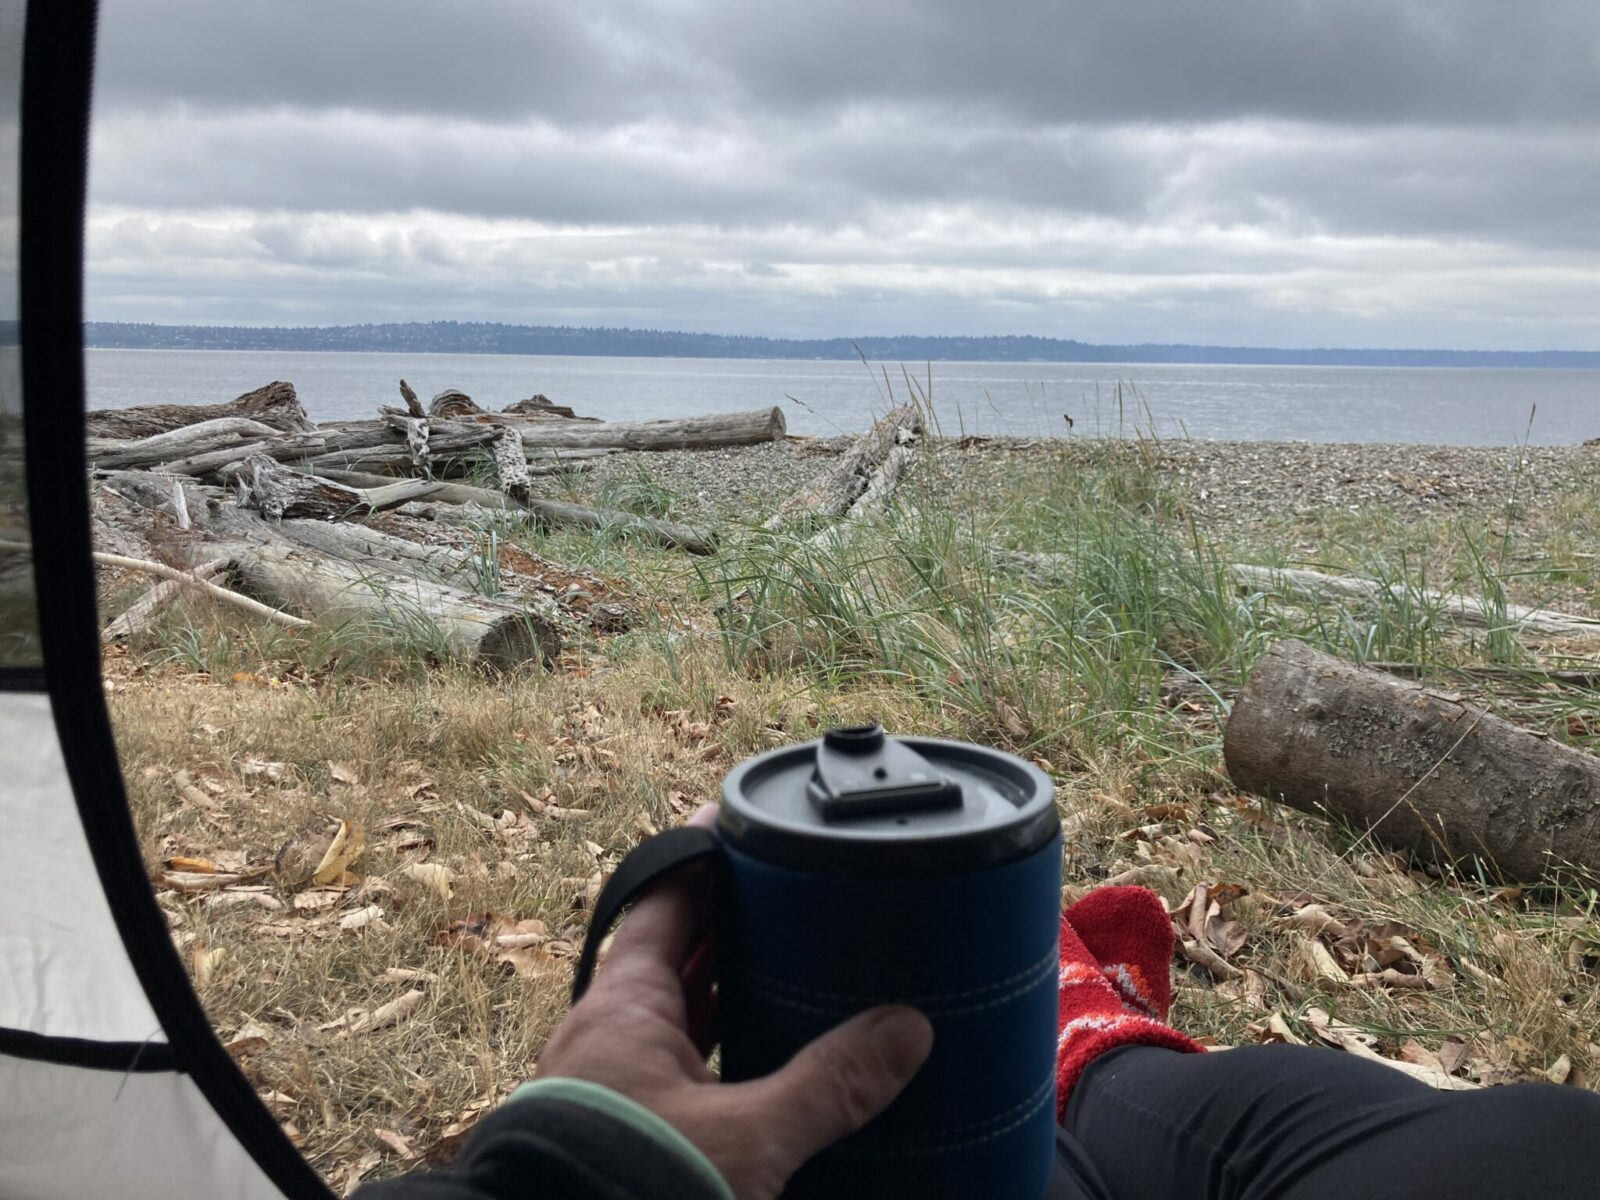 A person sitting in the opening of a tent at the beach. It's a cloudy morning and the person is holding a coffee cup and wearing leggings and red socks. There is distant forested land across the water